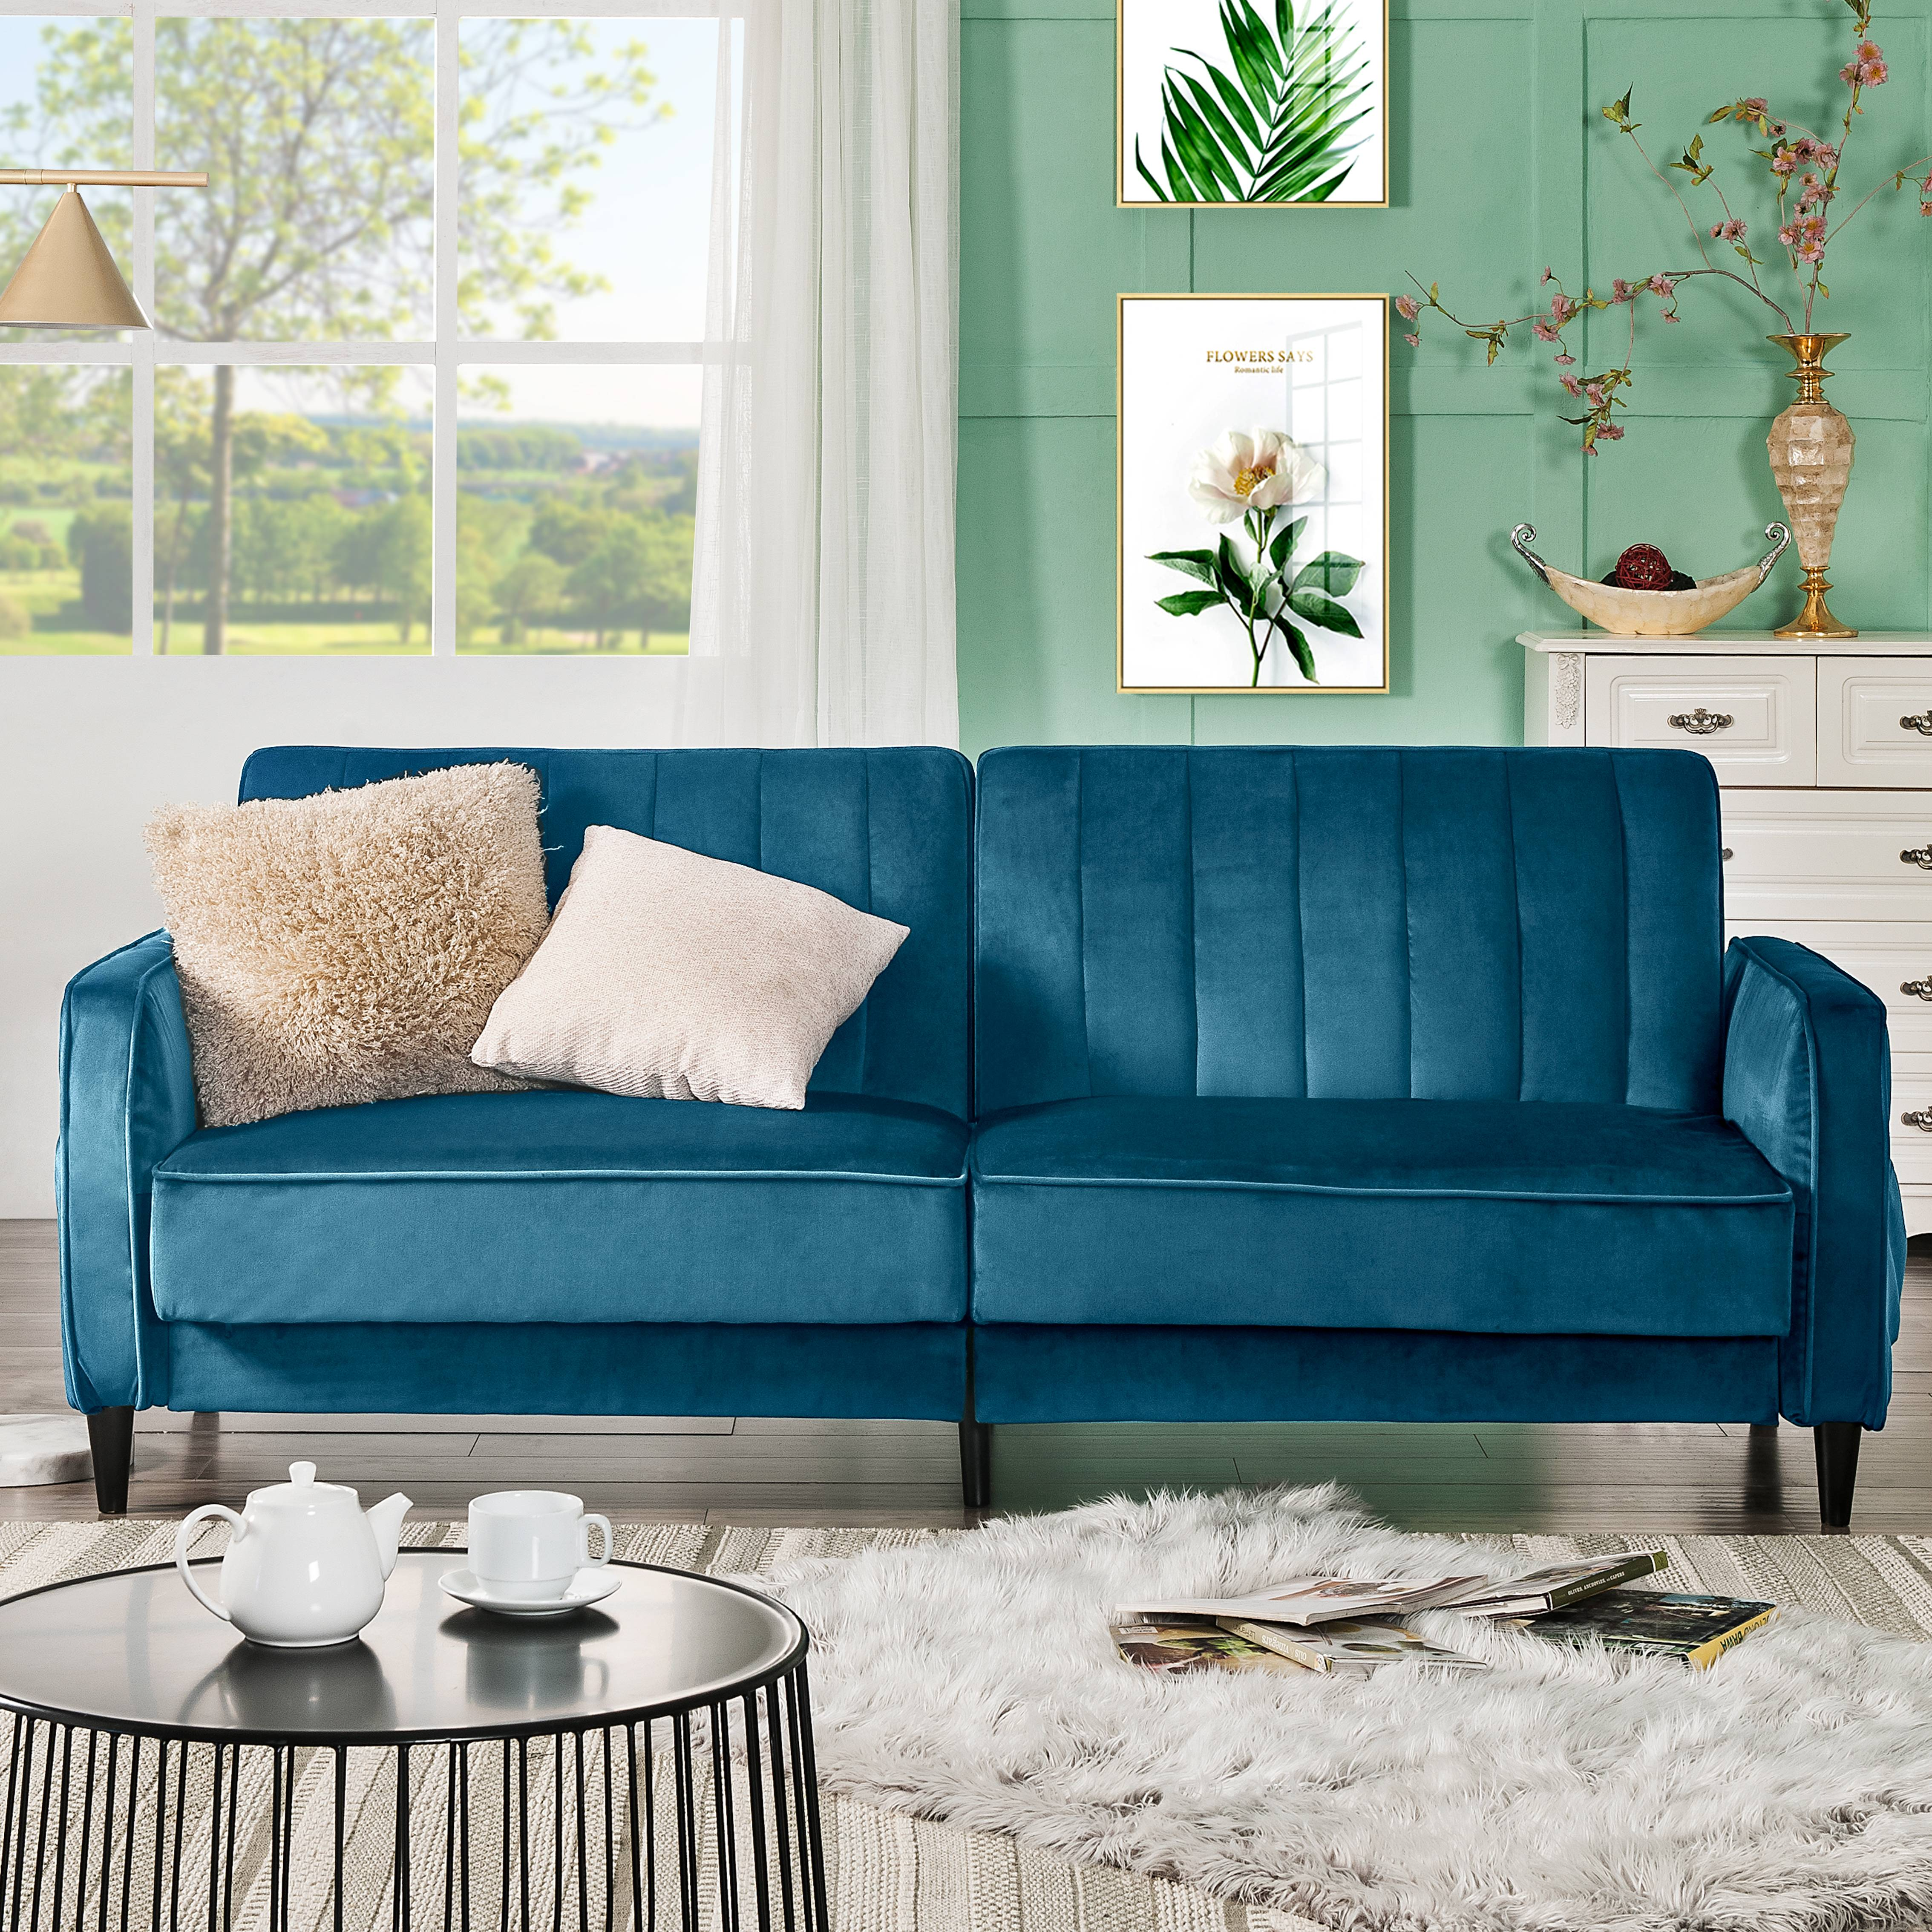 Picture of: Premium Velvet Love Seats Clearance Sectional Sofa And Couch With Solid Wood Frame And Legs Mid Century Modern Couch Recliner Sofa Living Room Furniture For Small Space 70 X31 X41 Blue Q6305 Walmart Com